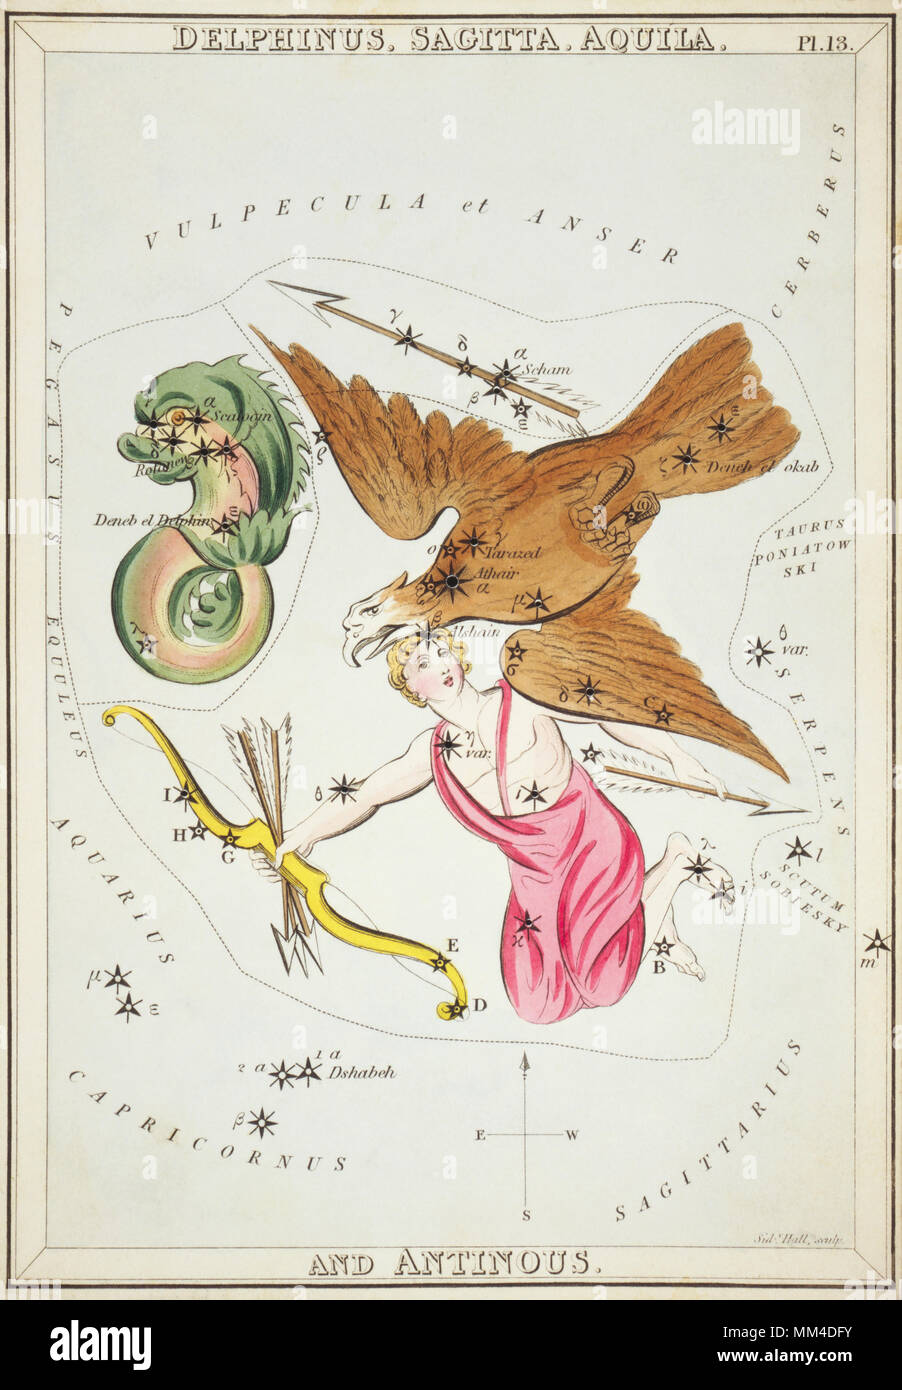 Delphinus, Sagitta, Aquila and Antinous. Card Number 13 from Urania's Mirror, or A View of the Heavens, one of a set of 32 astronomical star chart cards engraved by Sidney Hall and publshed 1824. - Stock Image